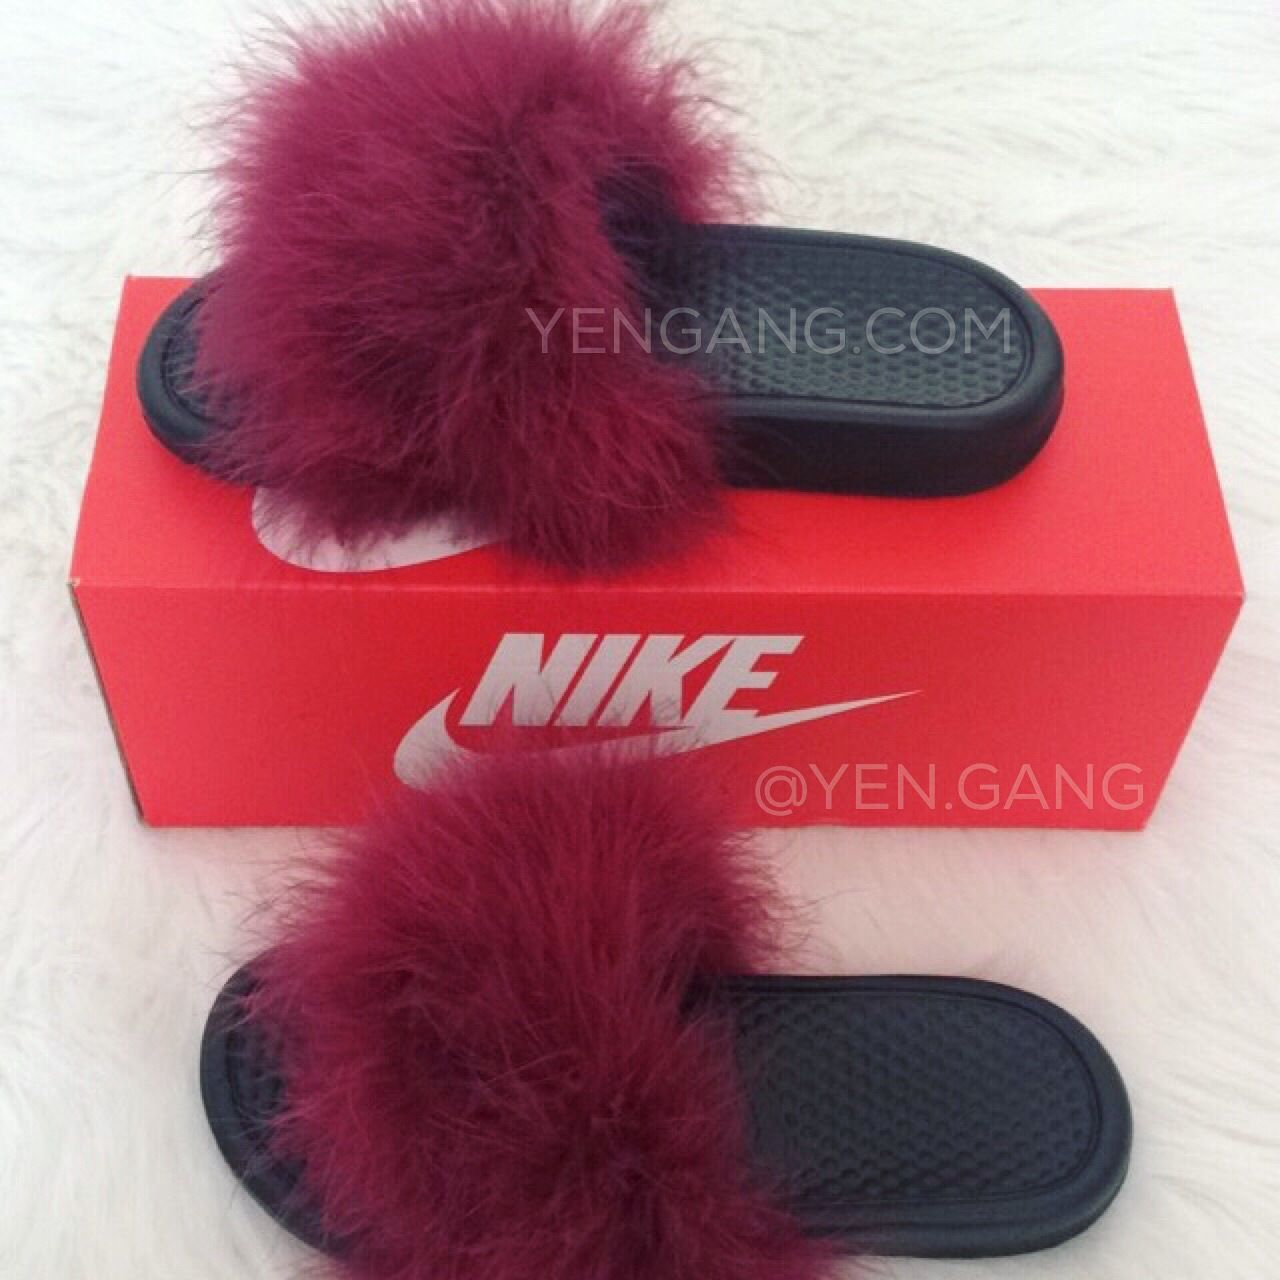 c444263dc6 Image of Fur Nike Slides